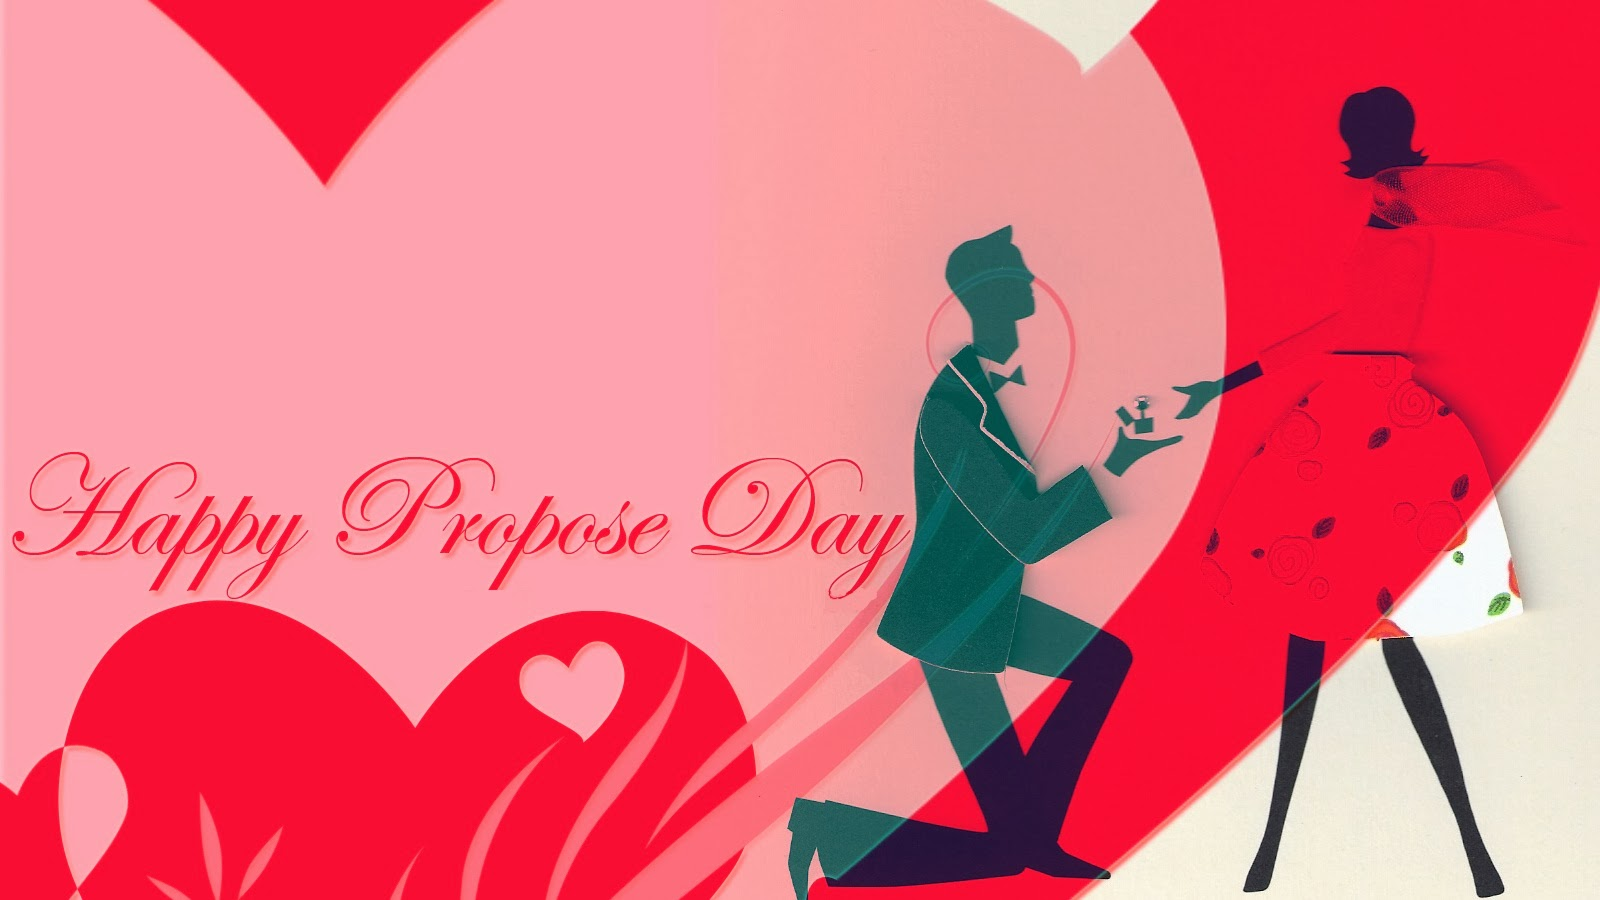 Propose Day 2017 Photos and Pictures For Girlfriend & Boyfriend